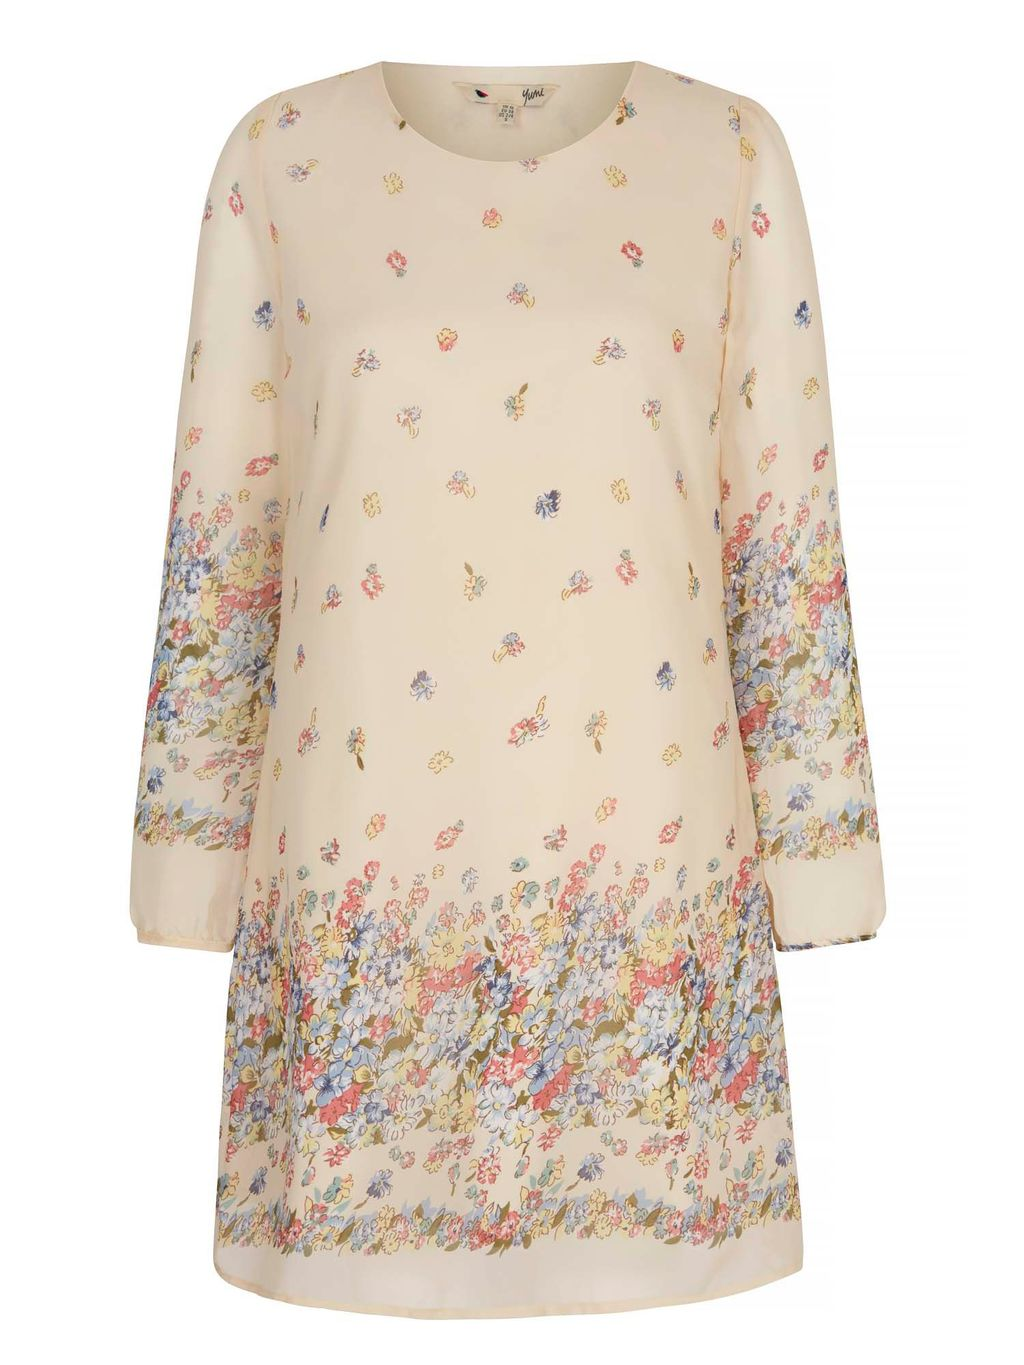 Summer Flower Tunic Dress, Cream - style: shift; length: mid thigh; neckline: round neck; predominant colour: ivory/cream; secondary colour: blush; occasions: casual; fit: soft a-line; fibres: polyester/polyamide - 100%; sleeve length: long sleeve; sleeve style: standard; texture group: crepes; pattern type: fabric; pattern: patterned/print; multicoloured: multicoloured; season: s/s 2016; wardrobe: highlight